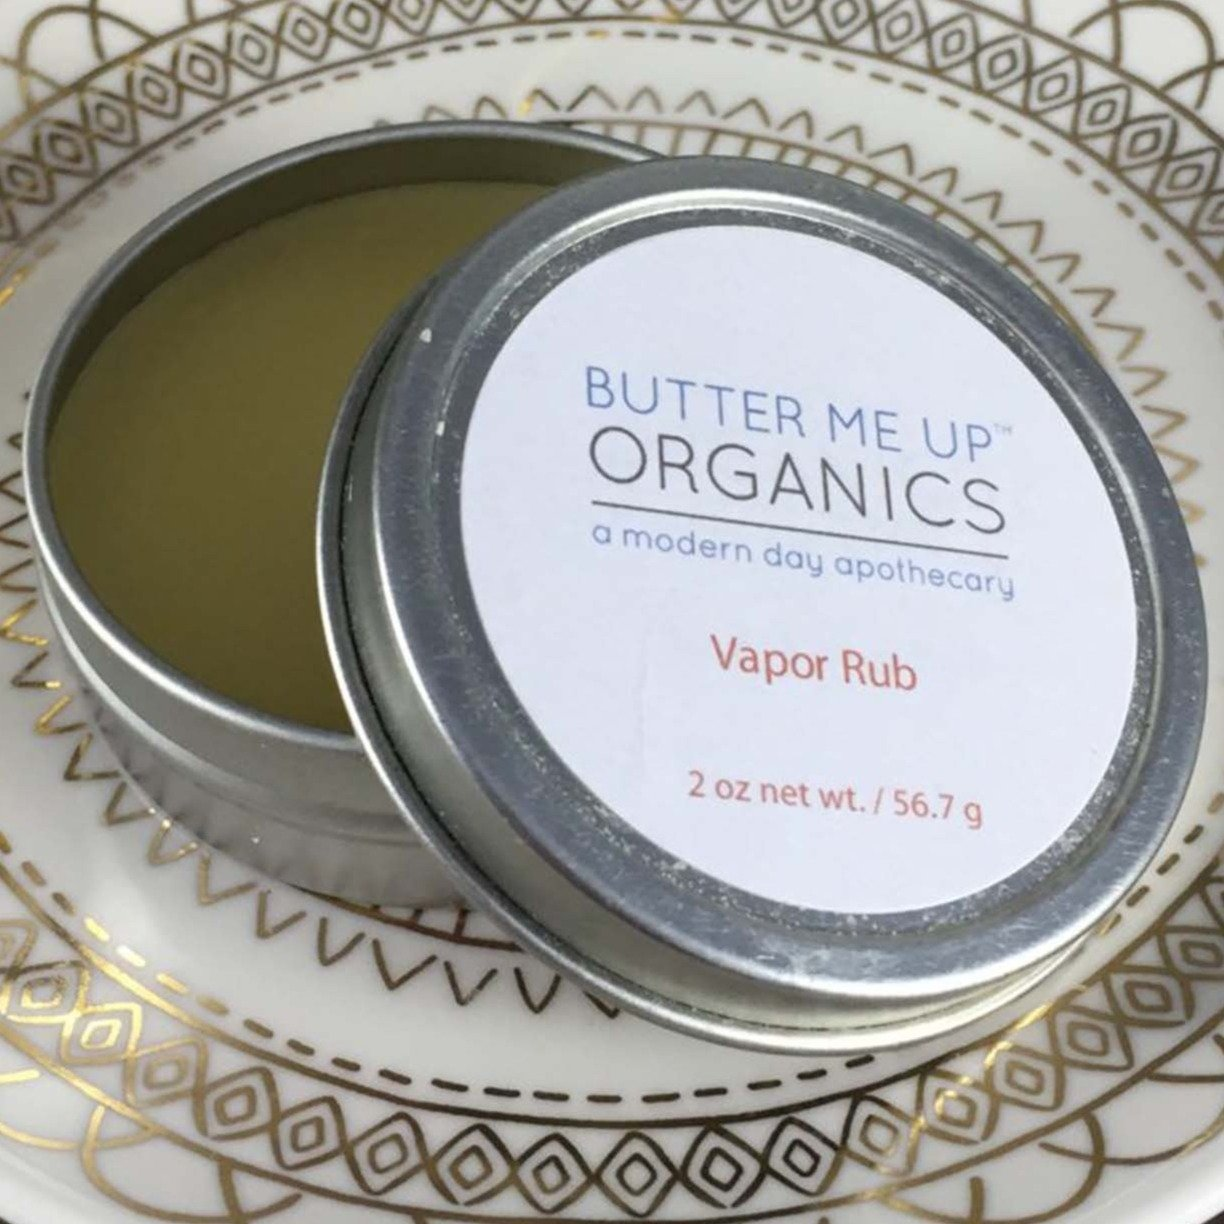 2 oz vapor rub in circular tin with lid ajar.